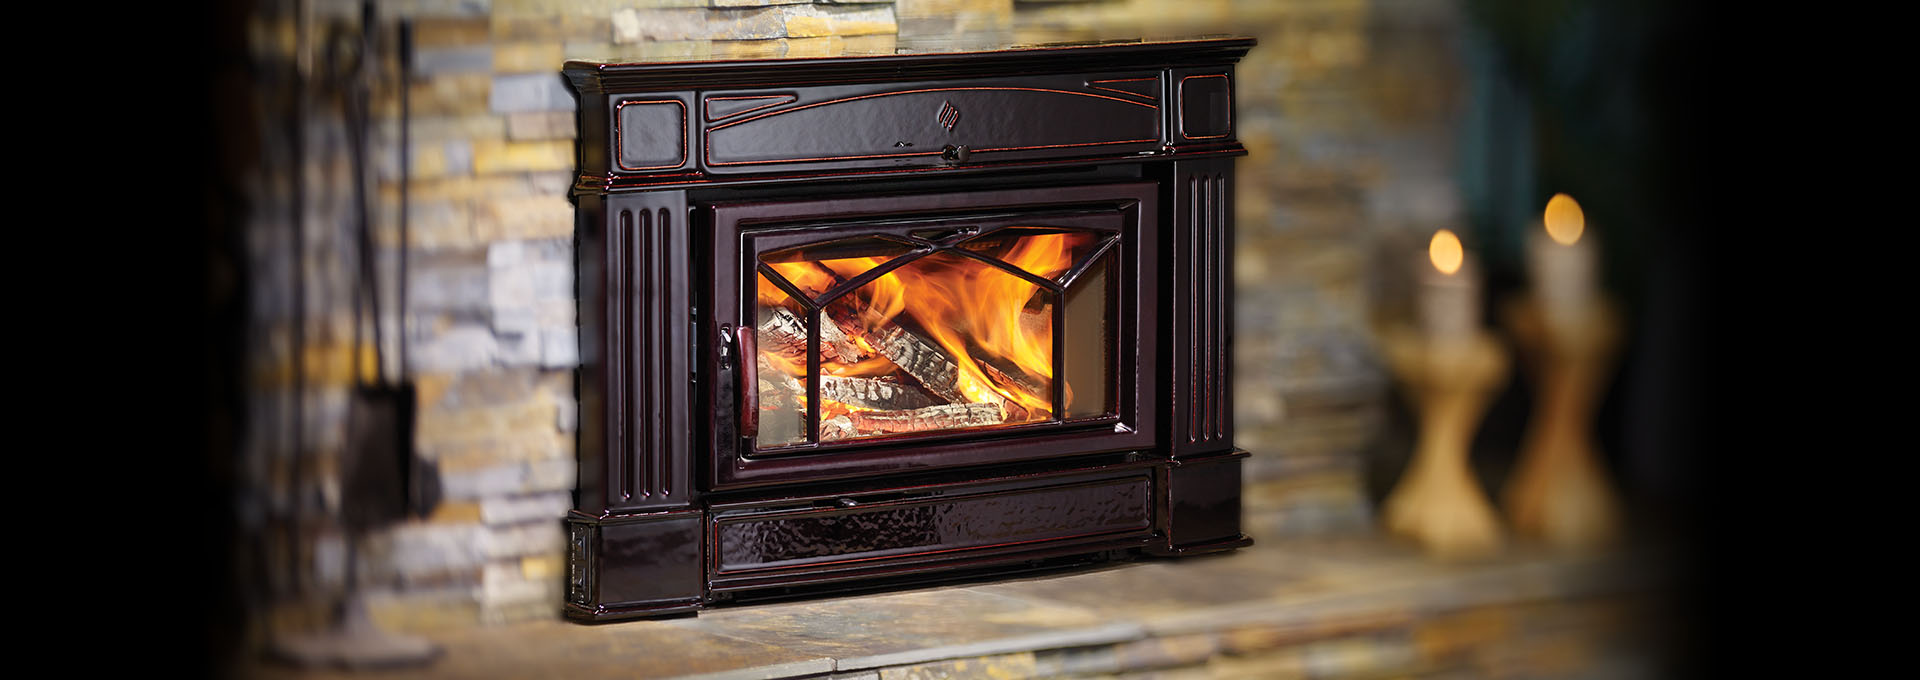 Propane Fireplace Inserts Hampton Cast Iron Fireplaces Regency Fireplace Products